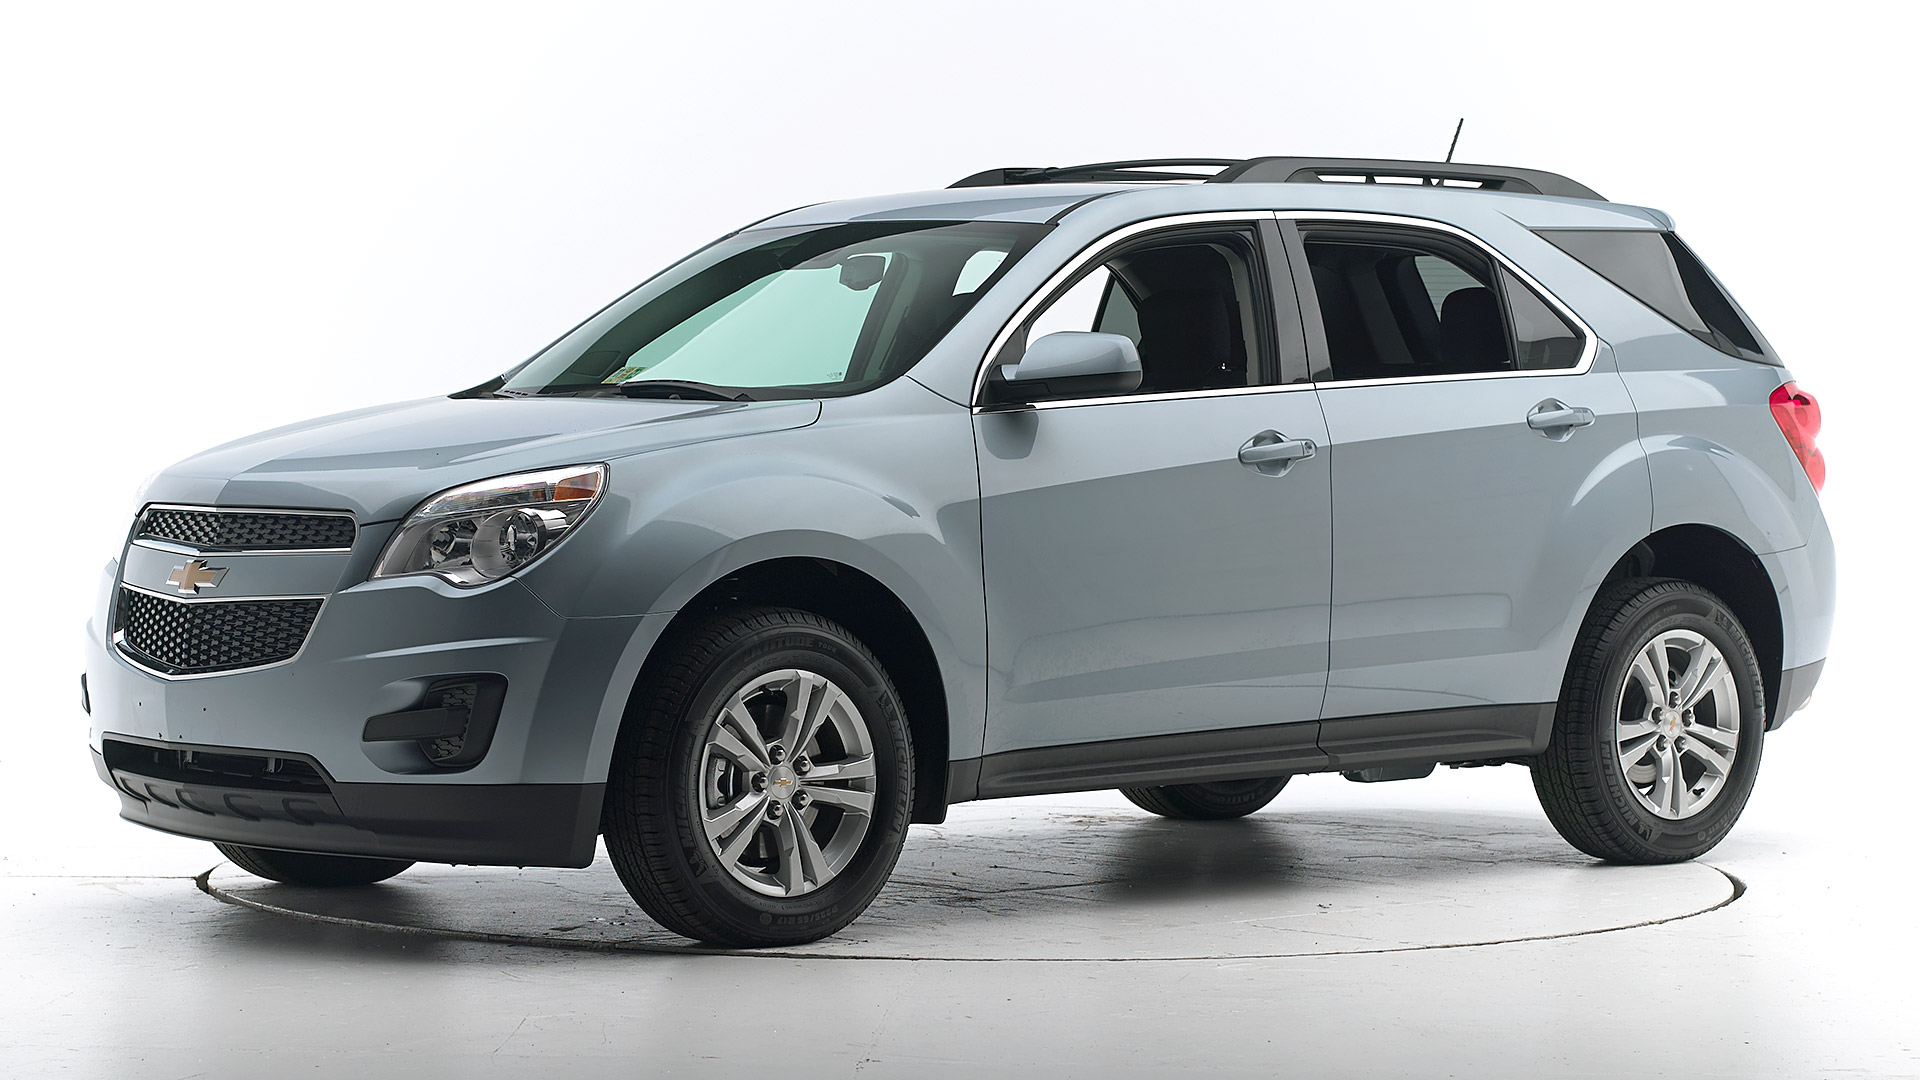 2014 Chevrolet Equinox 4-door SUV